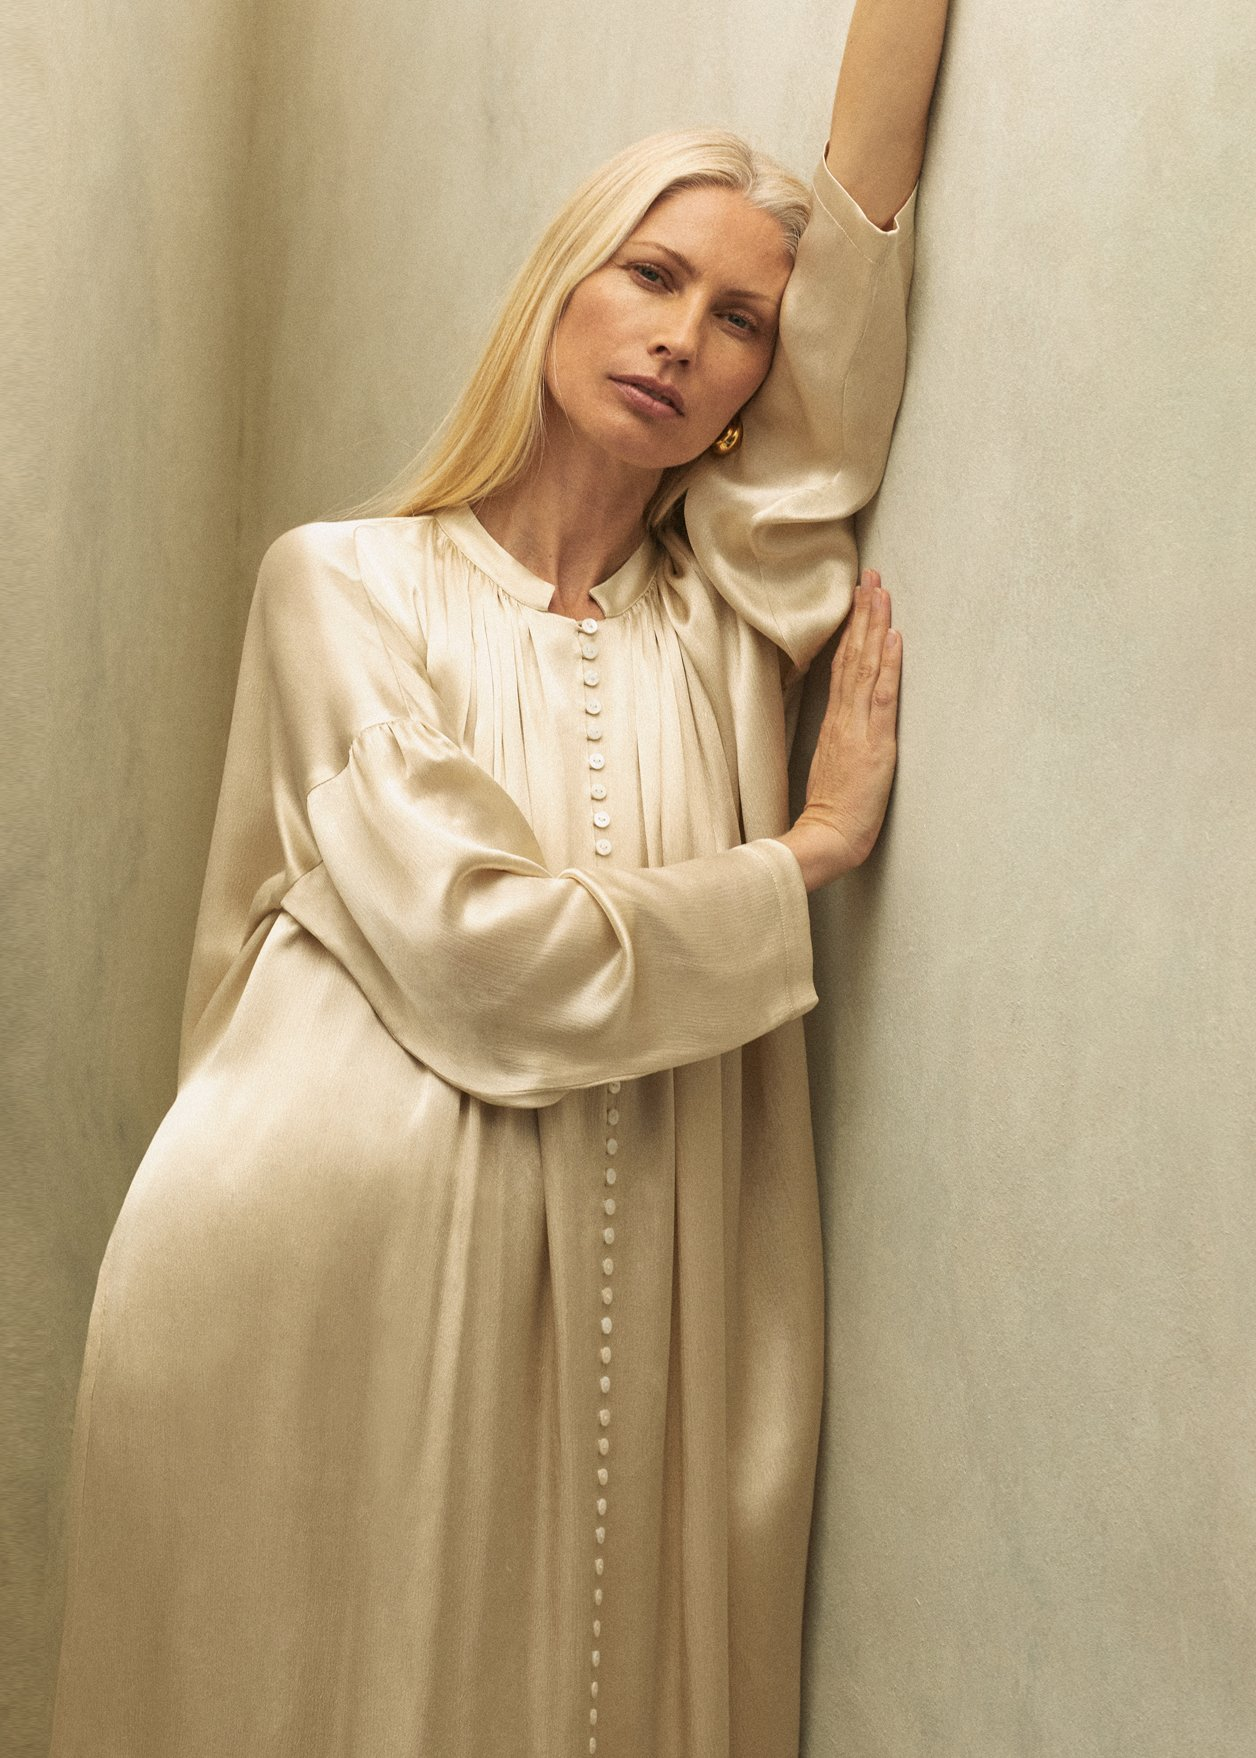 Ruched Neckline Dress In Viscose - Ivory - by Zoe Gherter for Co